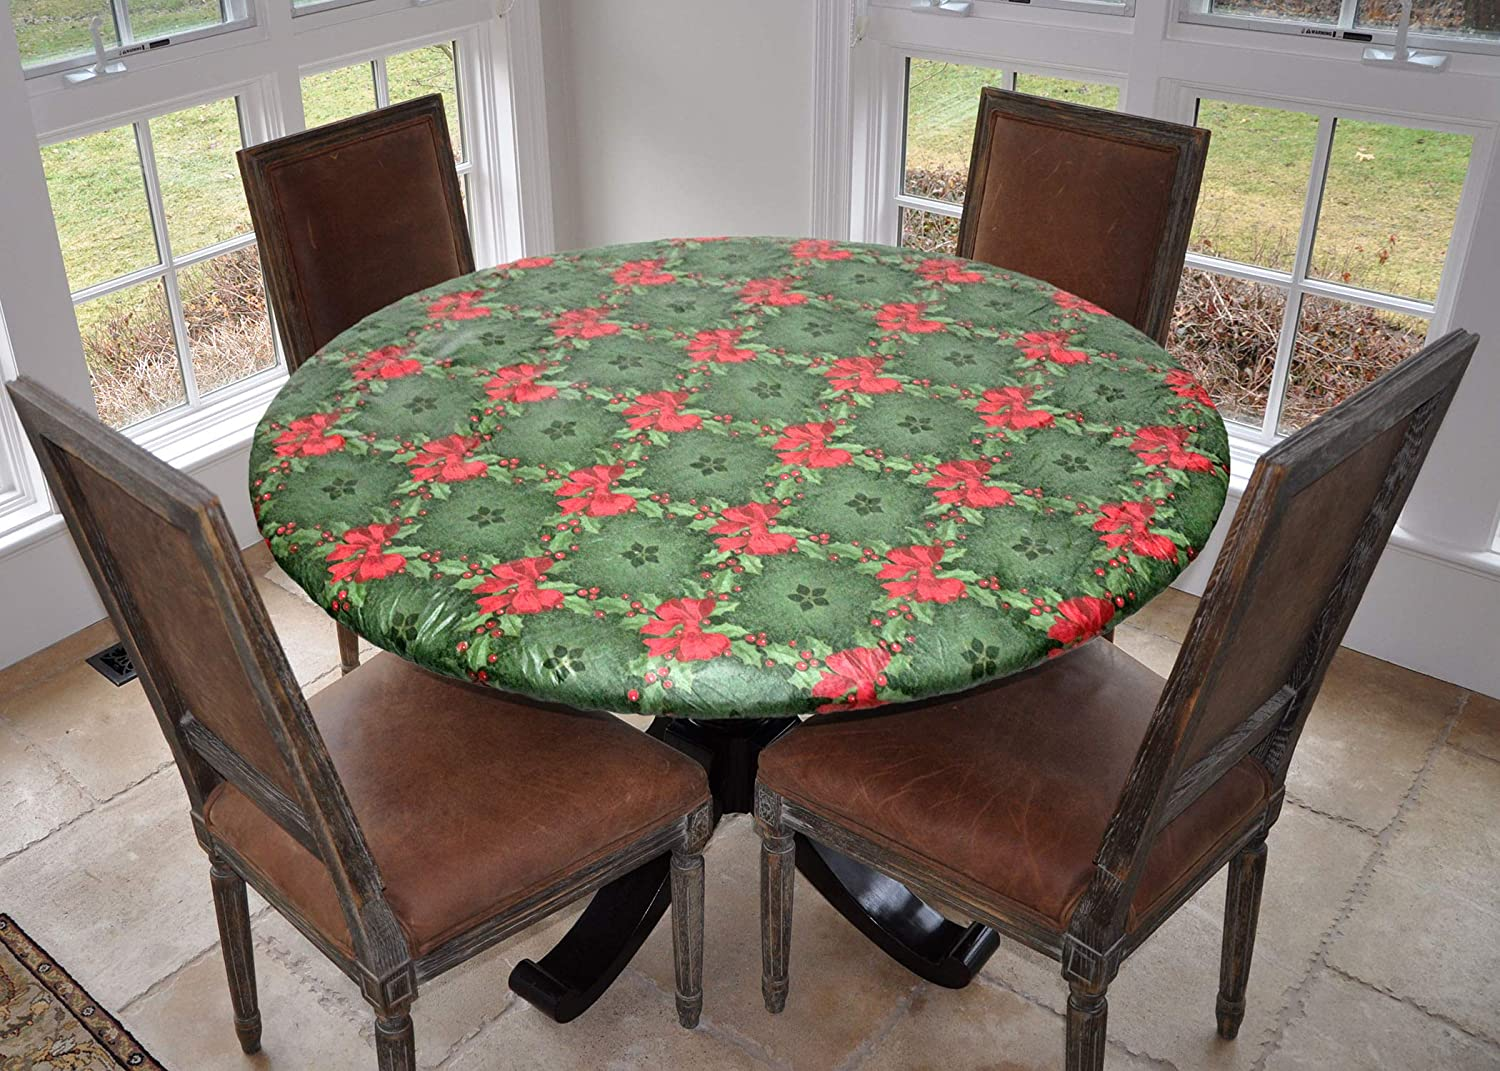 "Covers For The Home Deluxe Elastic Edged Flannel Backed Vinyl Fitted Table Cover - Holly Pattern - Large Round - Fits Tables up to 45"" - 56"" Diameter"